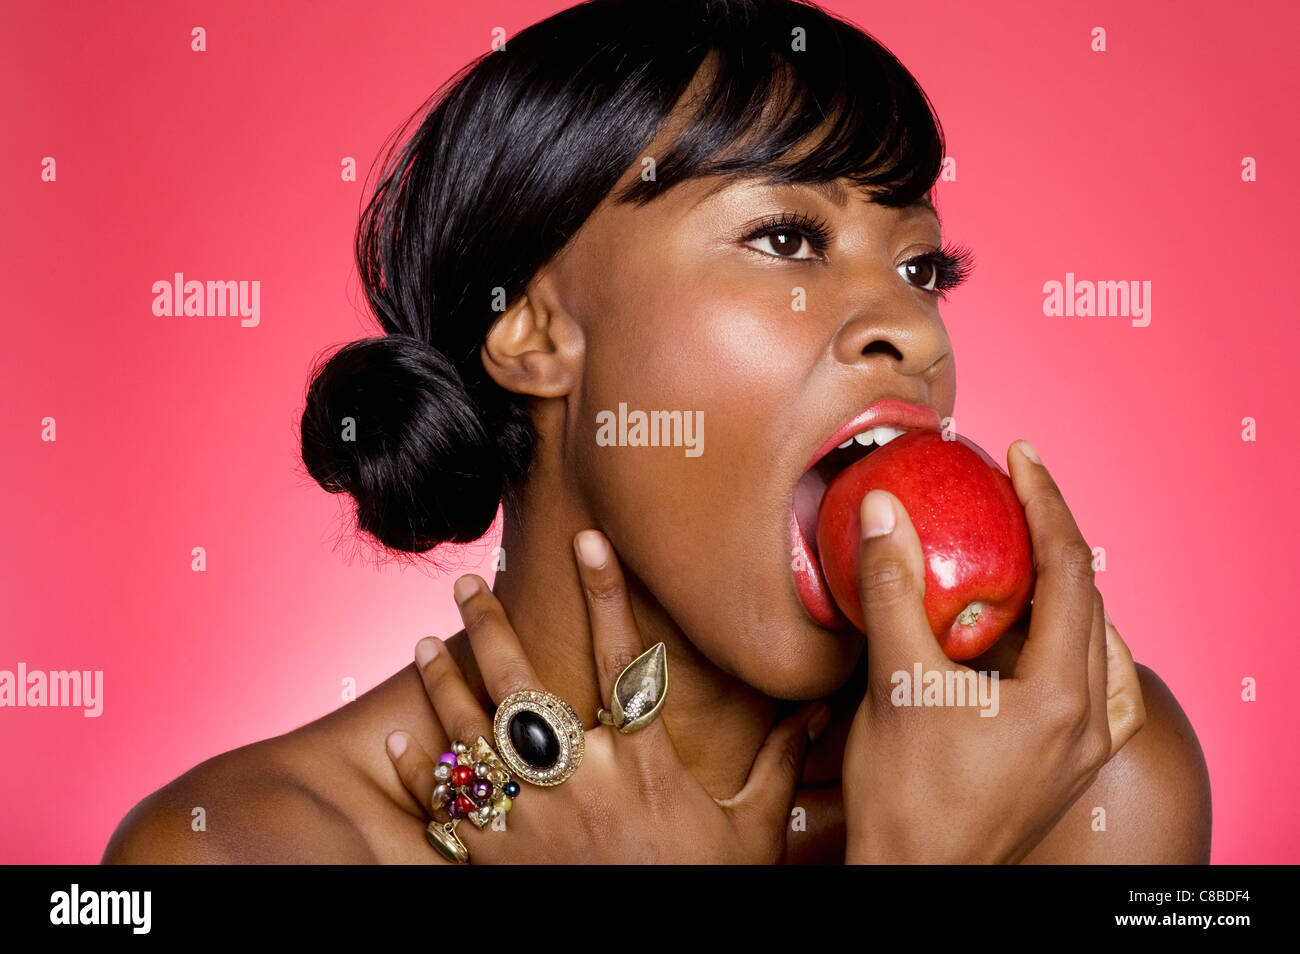 Close up of woman biting an apple over colored background - Stock Image